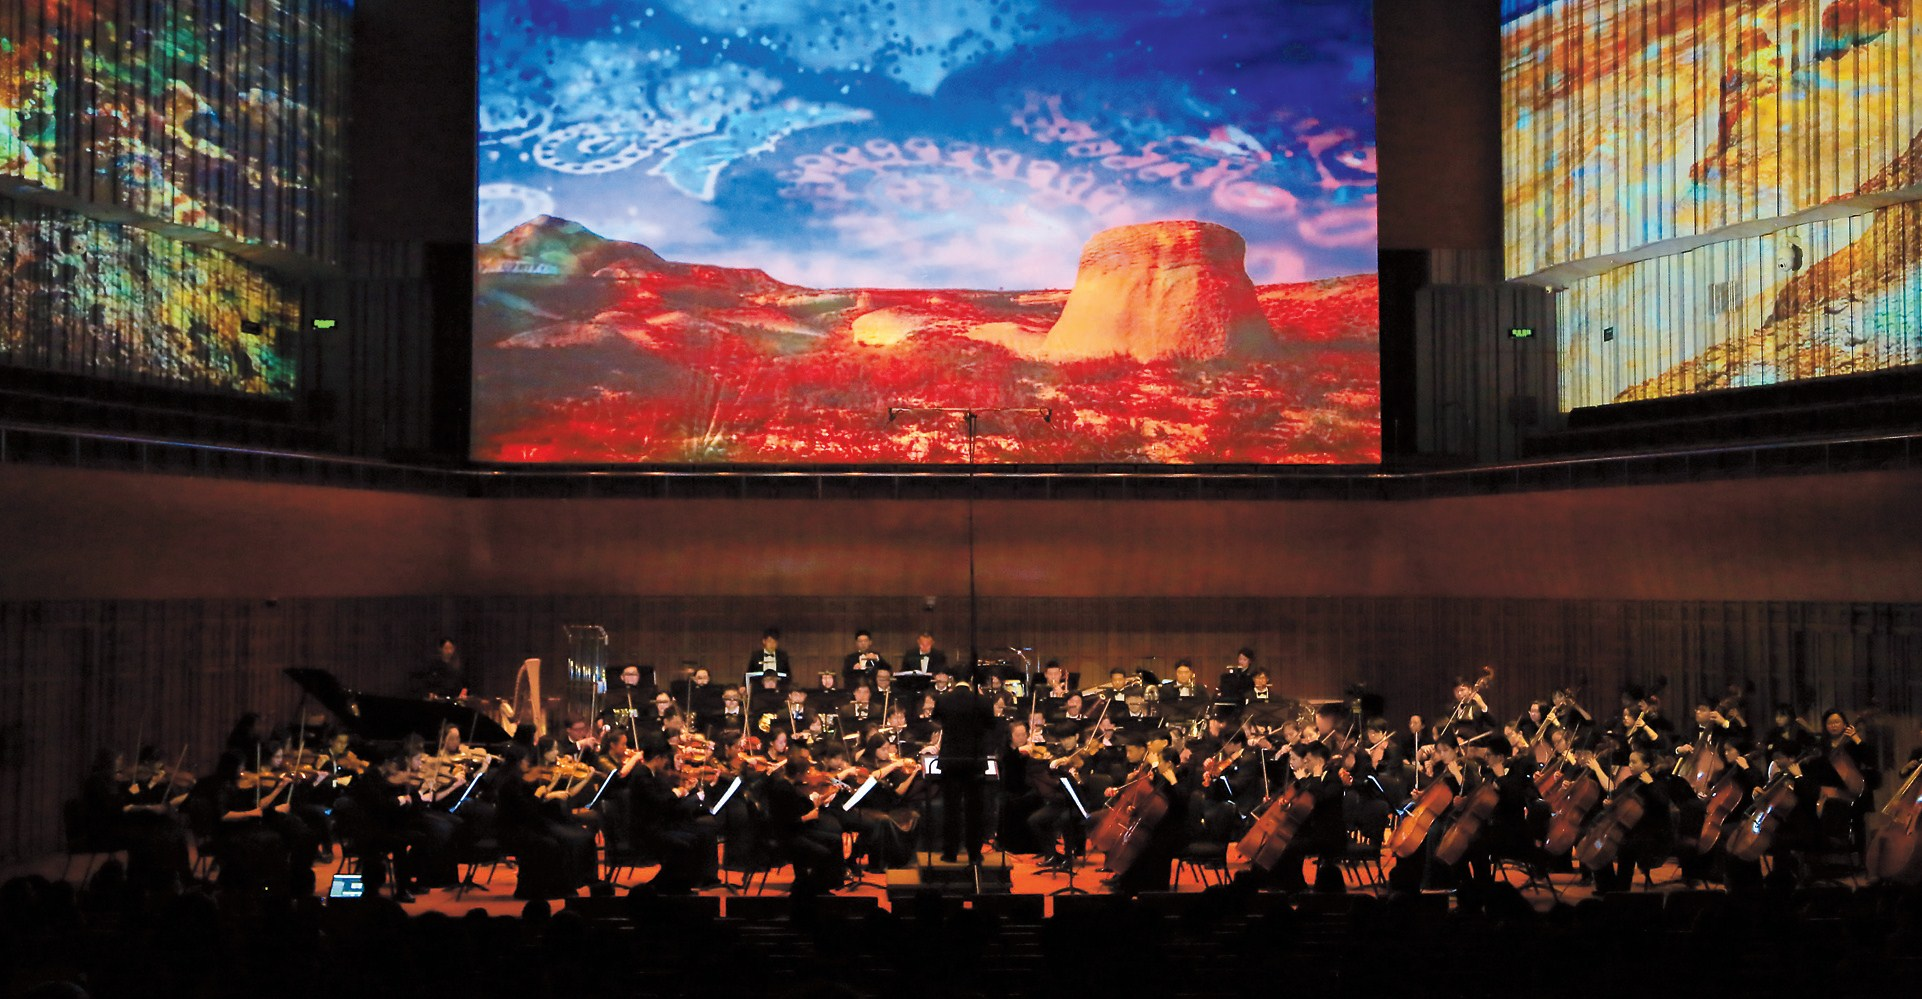 """A Pursuit of Dream on the Silk Road"" will be presented as the closing performance at the Shanghai Oriental Art Center."